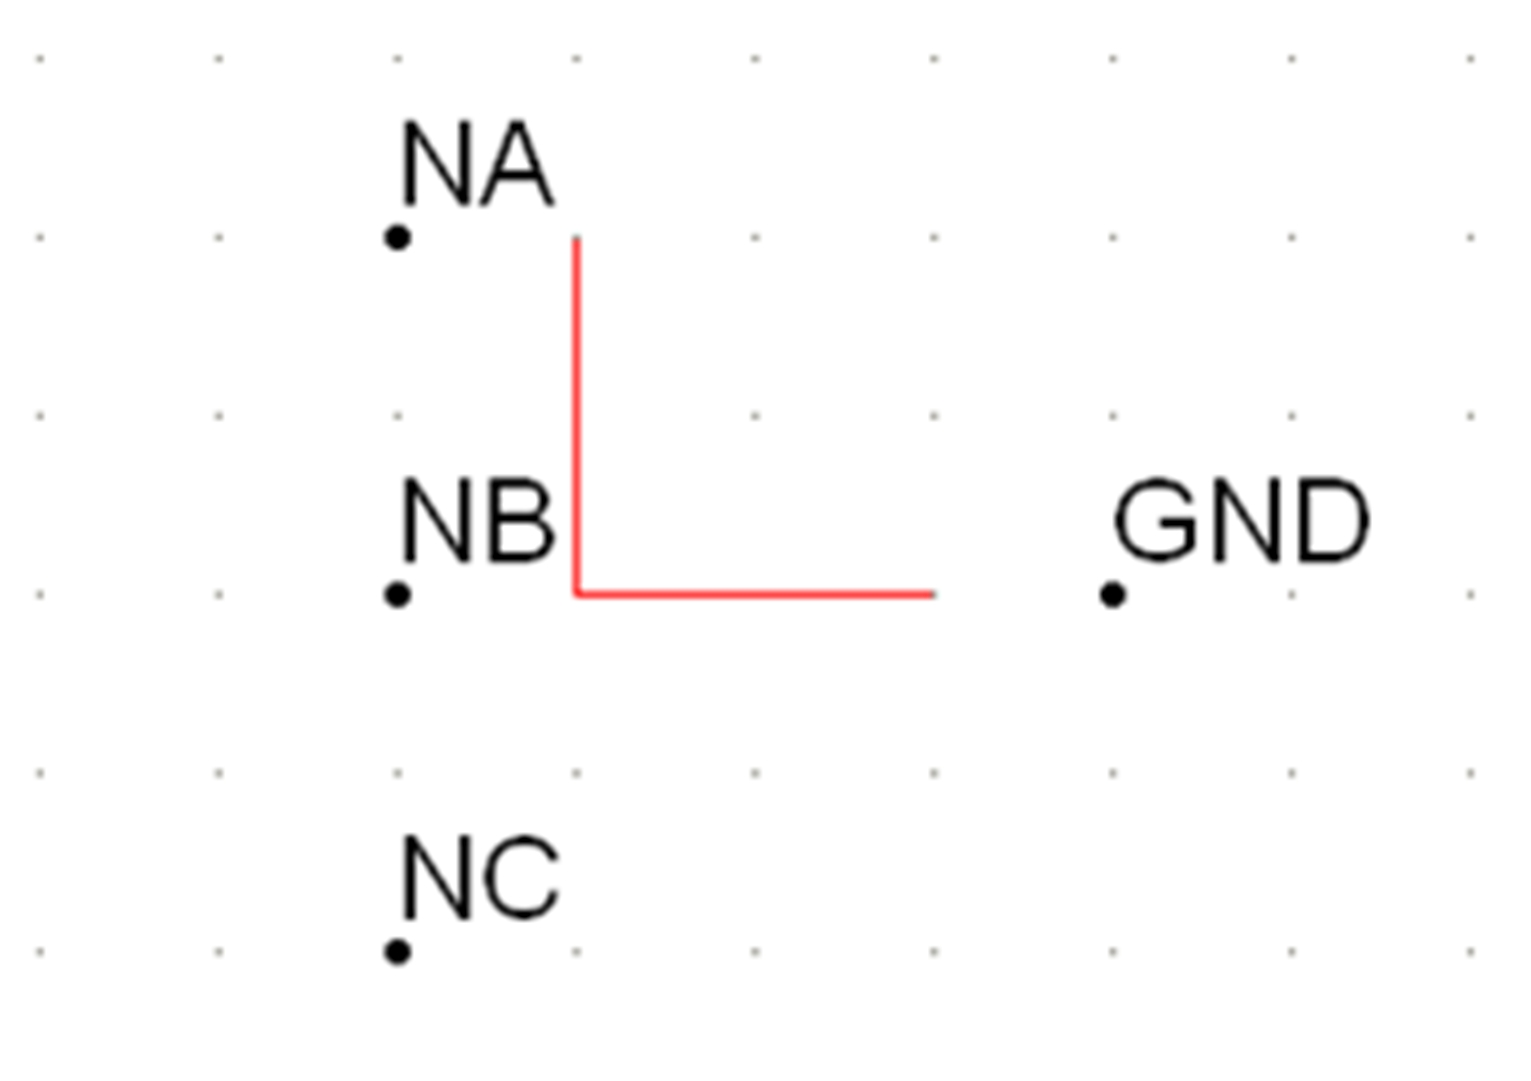 Equivalent Conductance Geq Electric Interface Rlc Series Circuit Details Y Connected Constant Impedance With R 12 L 0053 H And C 333 F A New Component Is Created 4 Electrical Connections Named Na Nb